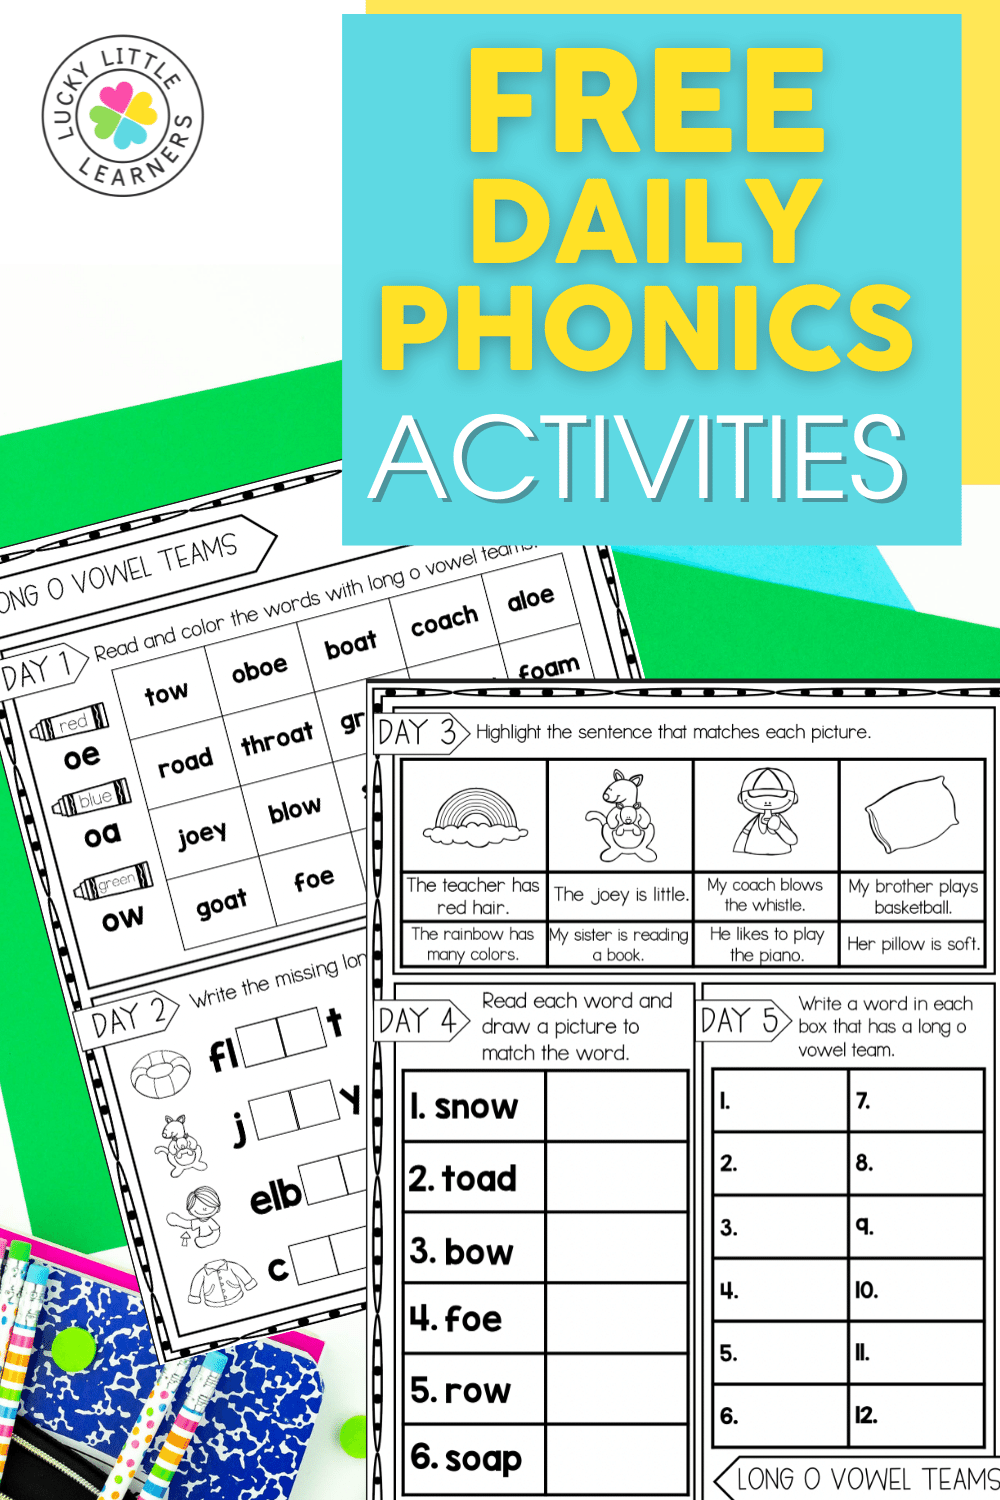 free daily phonics activities for a full week